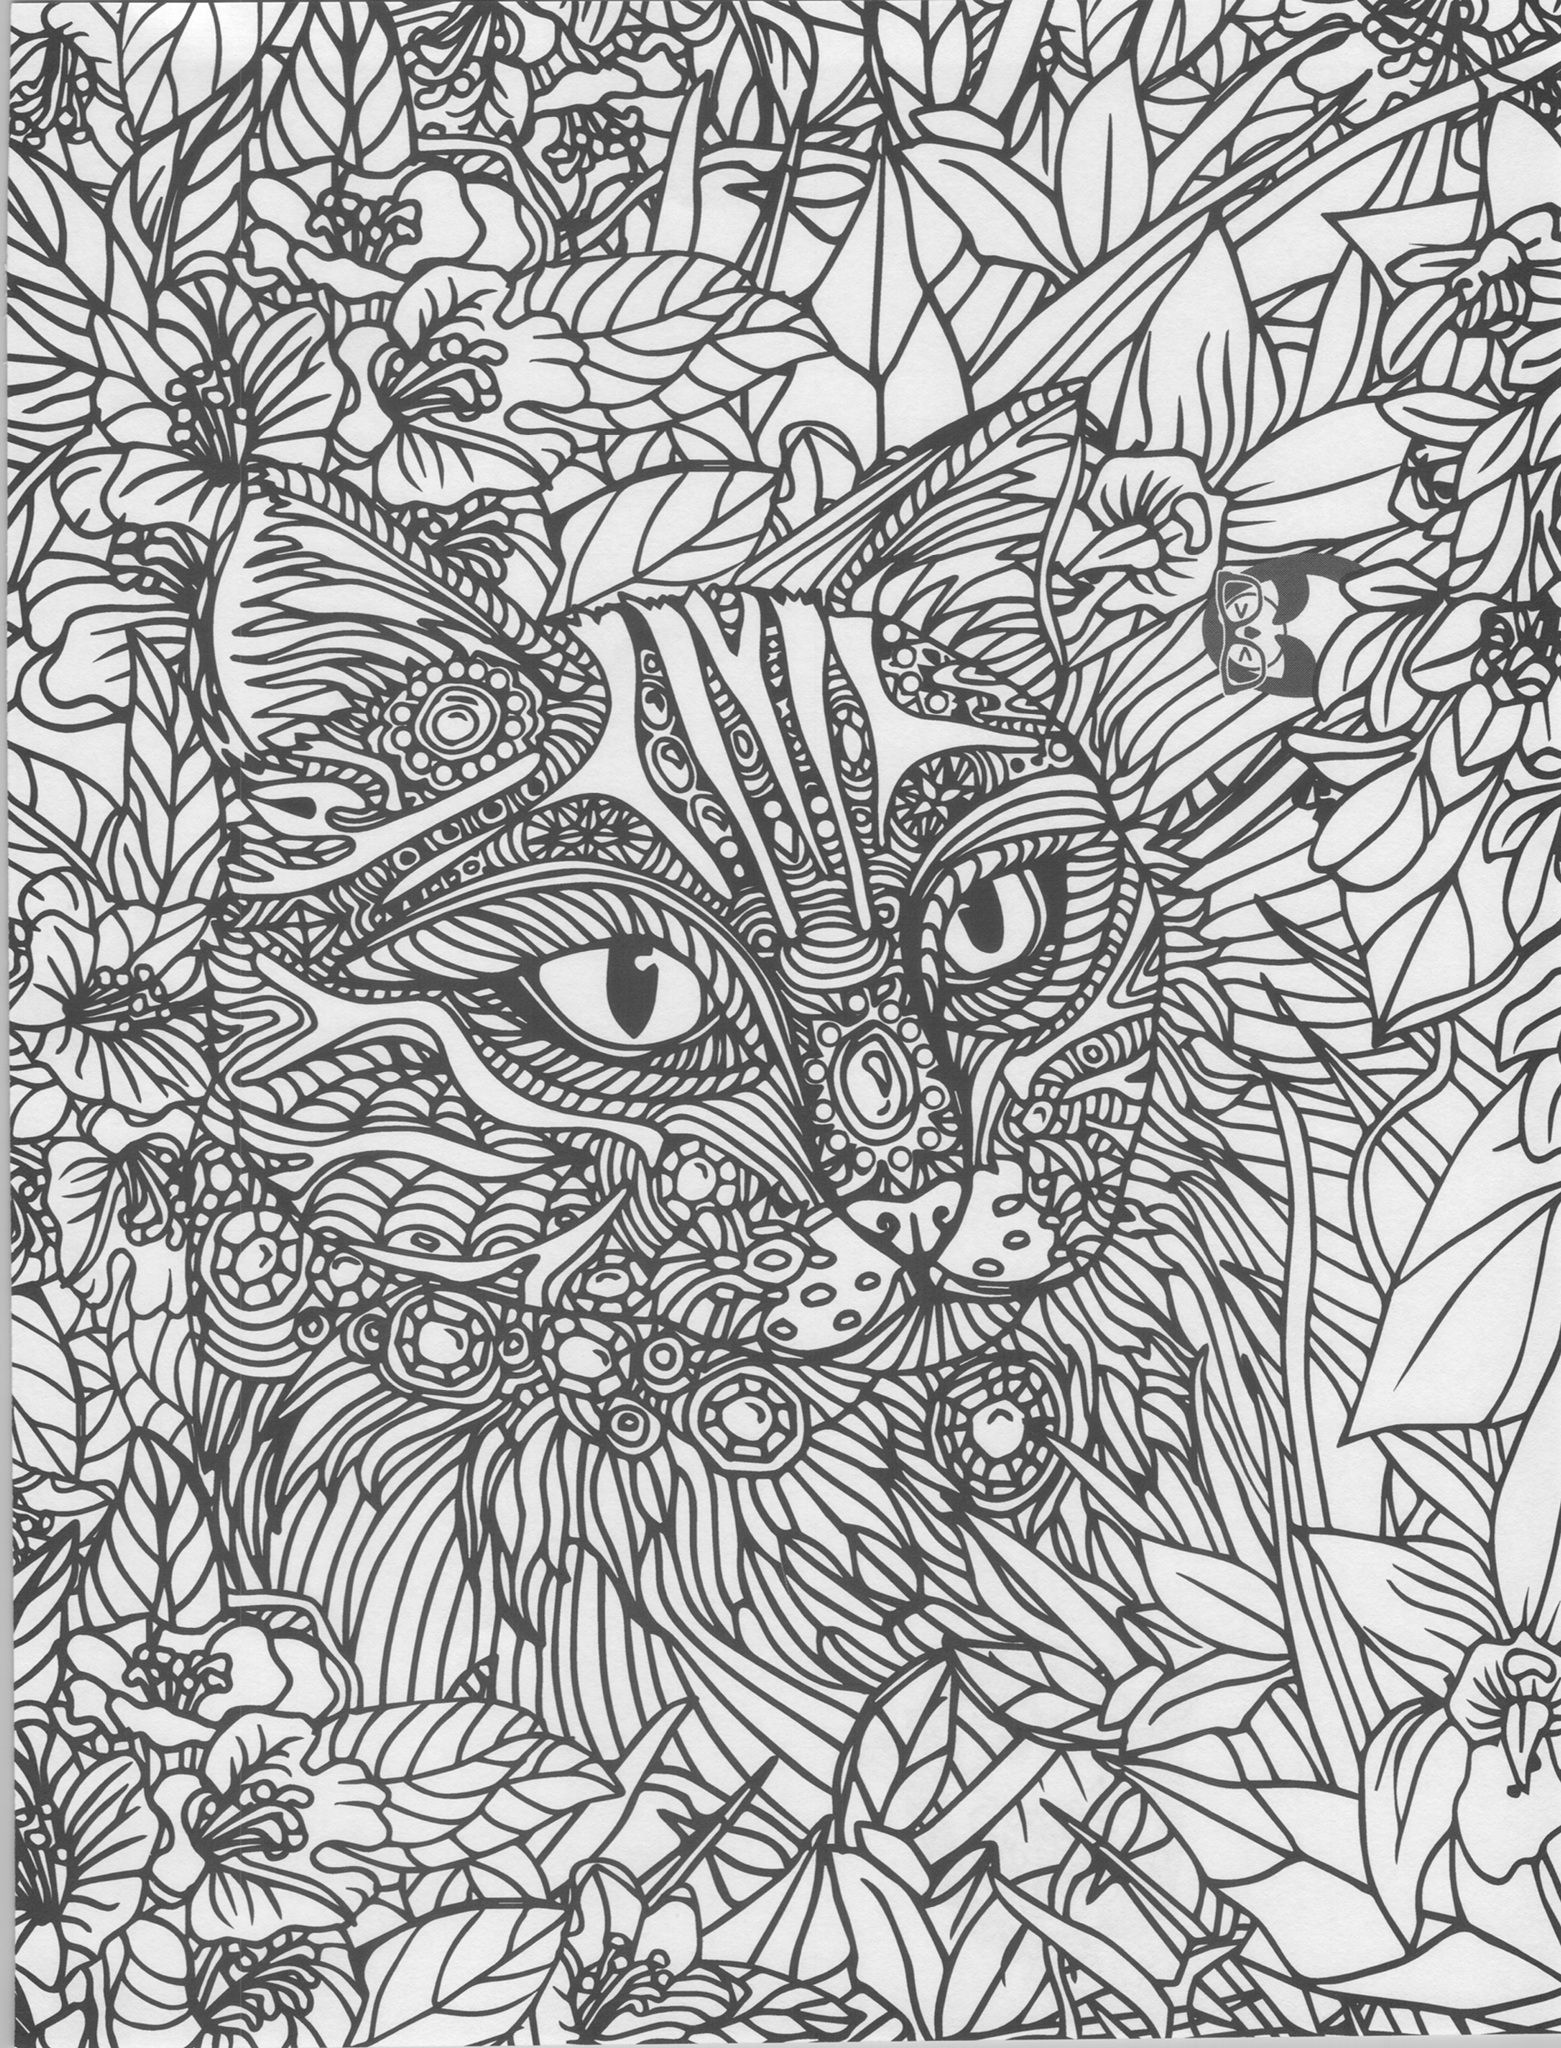 Cat zentangle coloring page | Cats + Dogs Coloring Pages for Adults ...